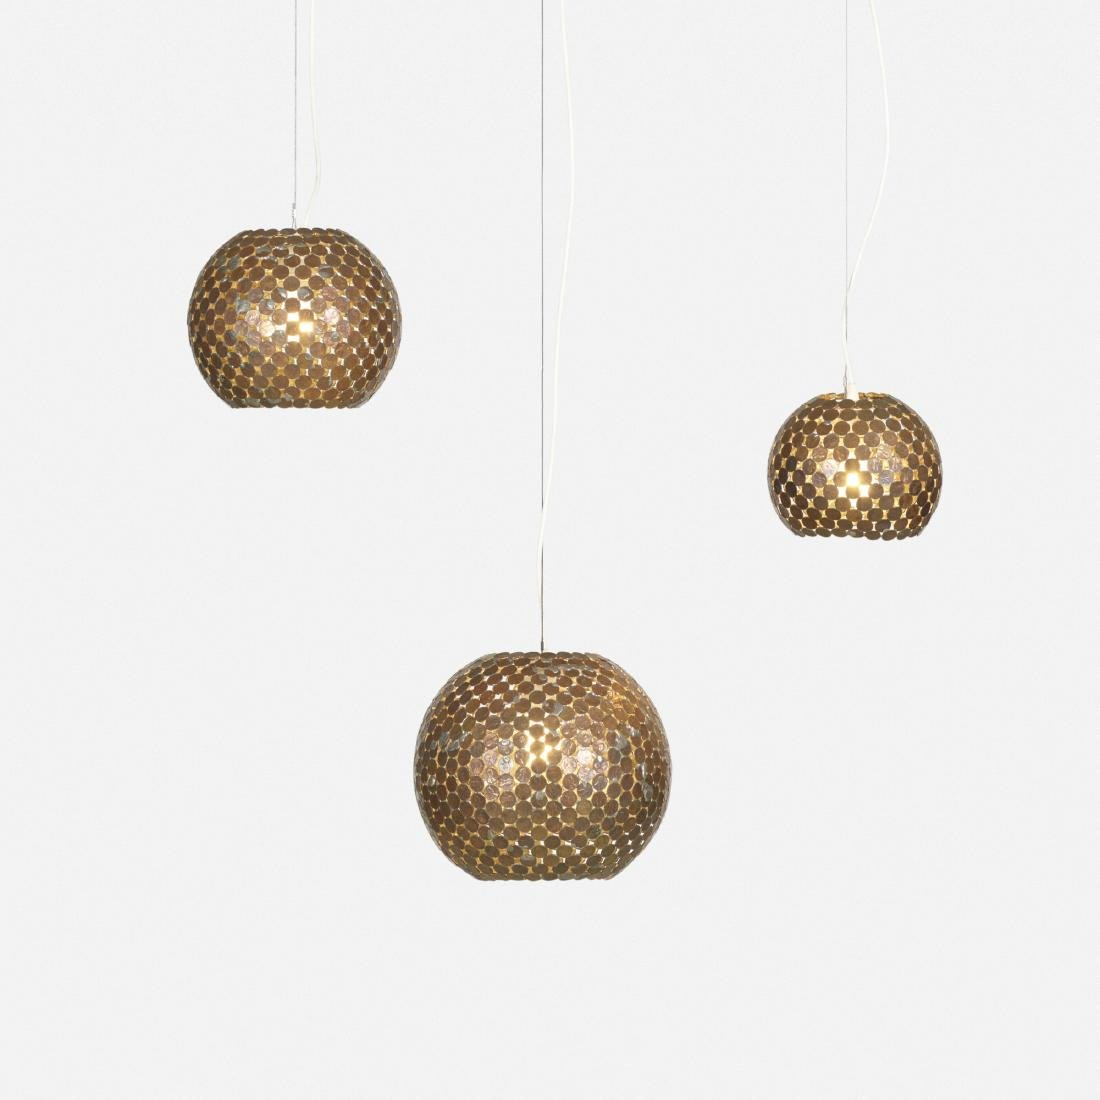 Mungo Thomson, Coin lamps, set of three